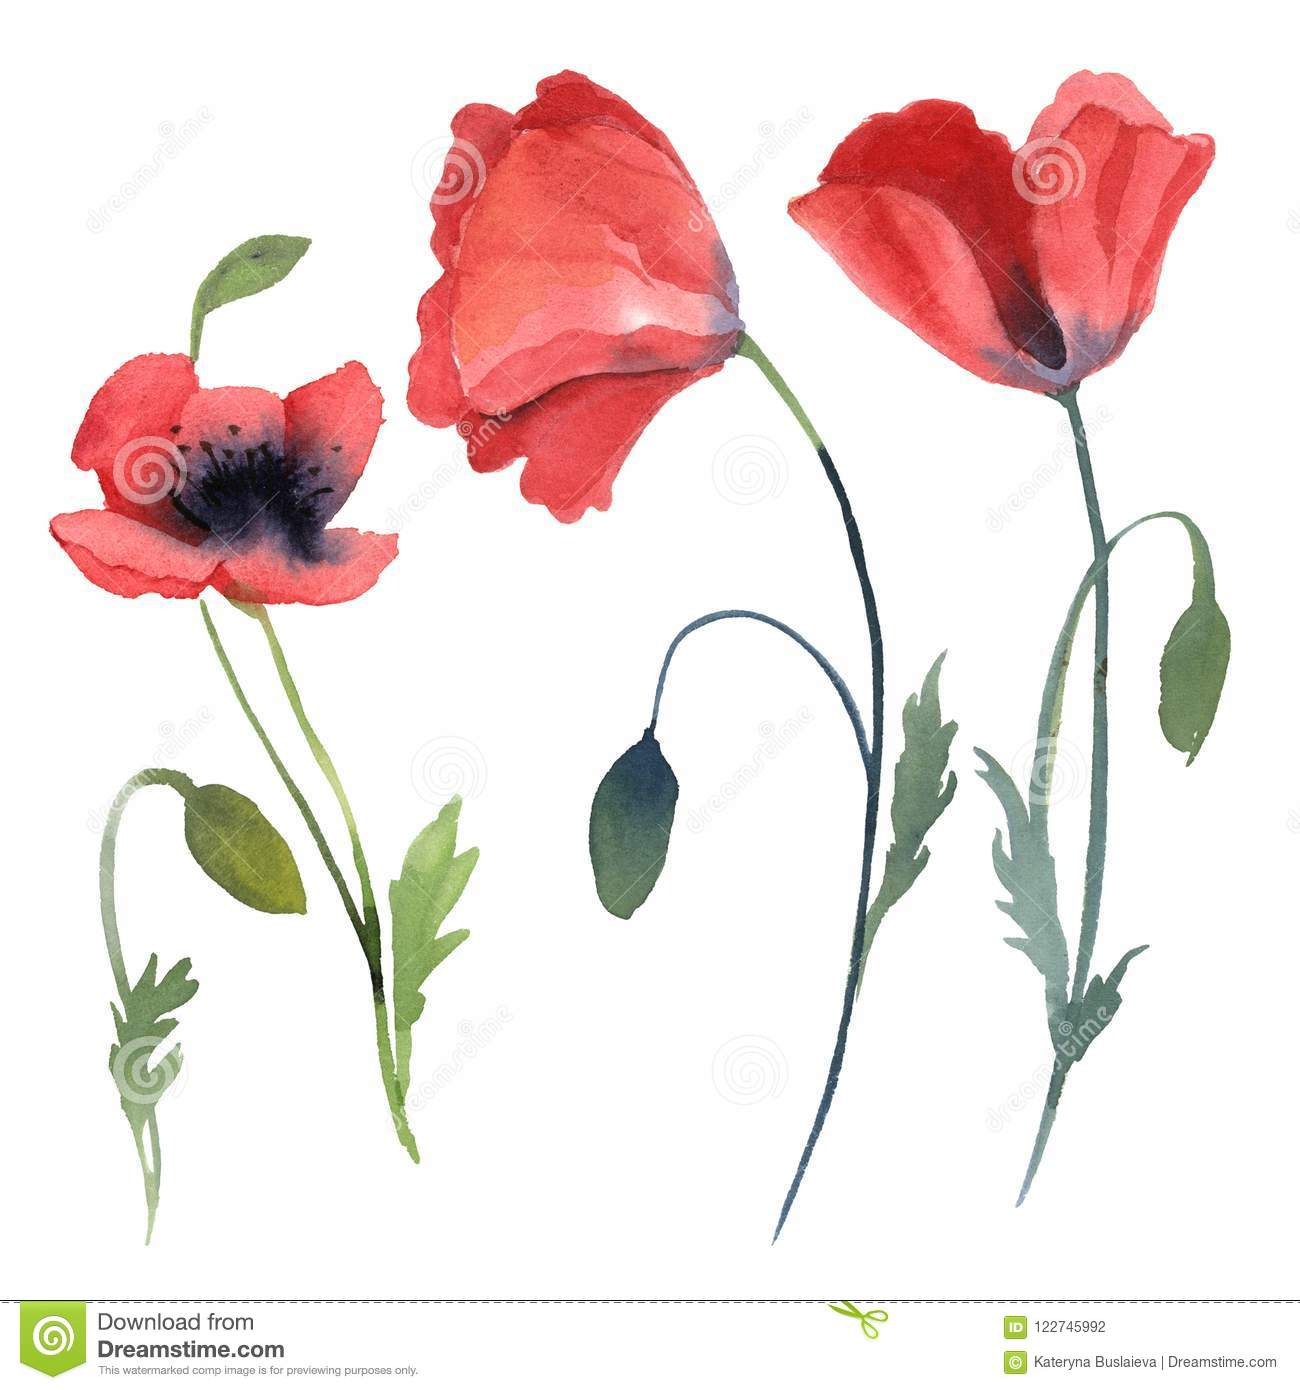 Set of red poppy flowers, leaves isolated on white background